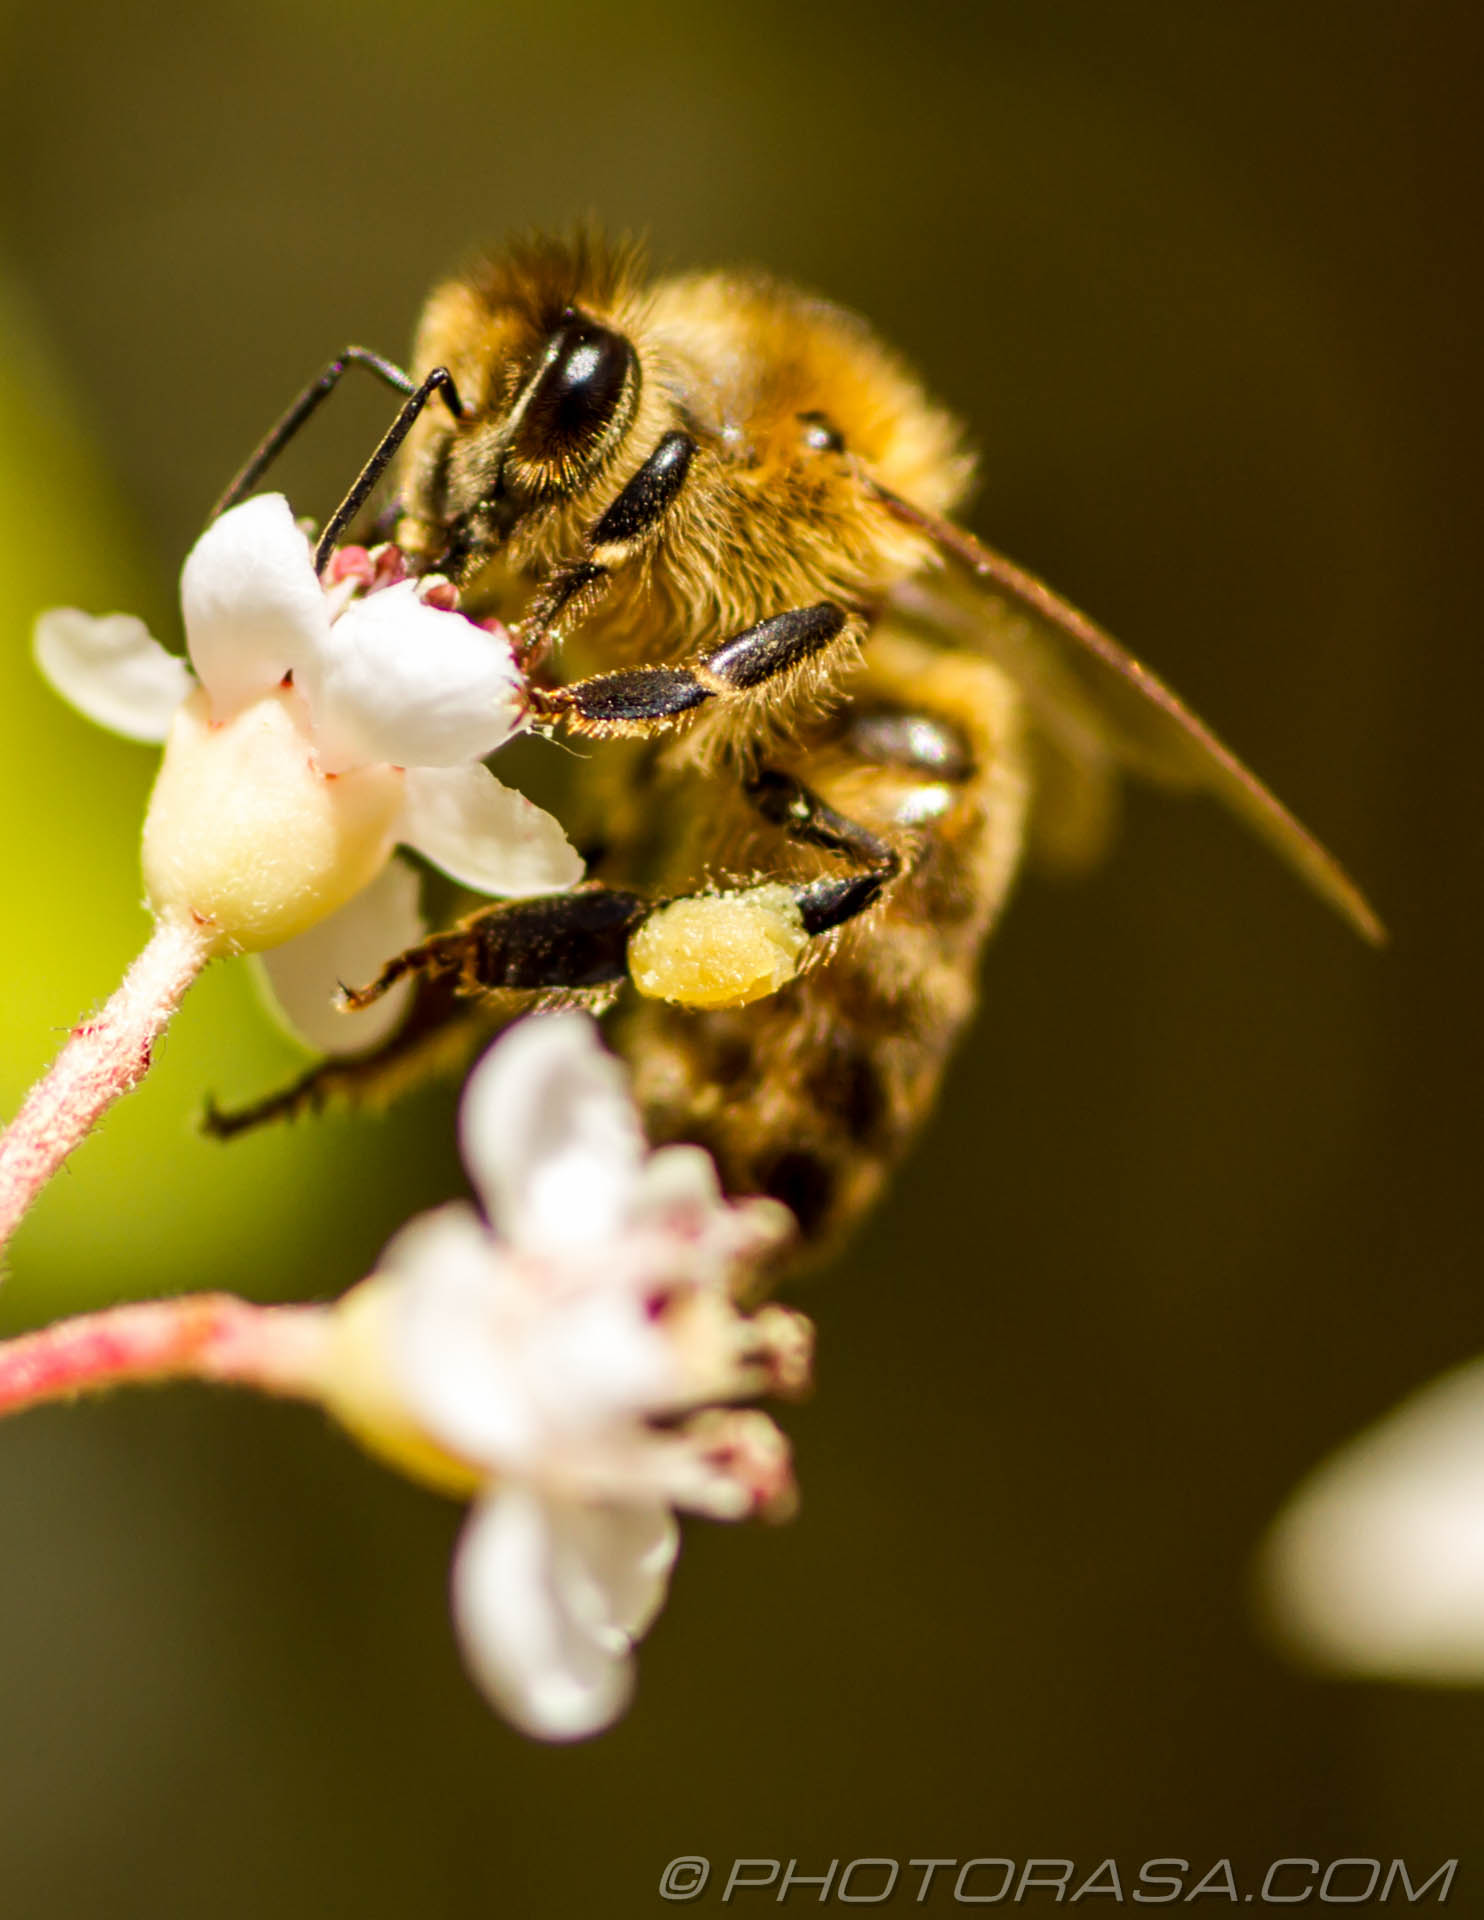 http://photorasa.com/honey-bees/honey-bee-on-flower-with-pollen-collected-on-rear-leg/